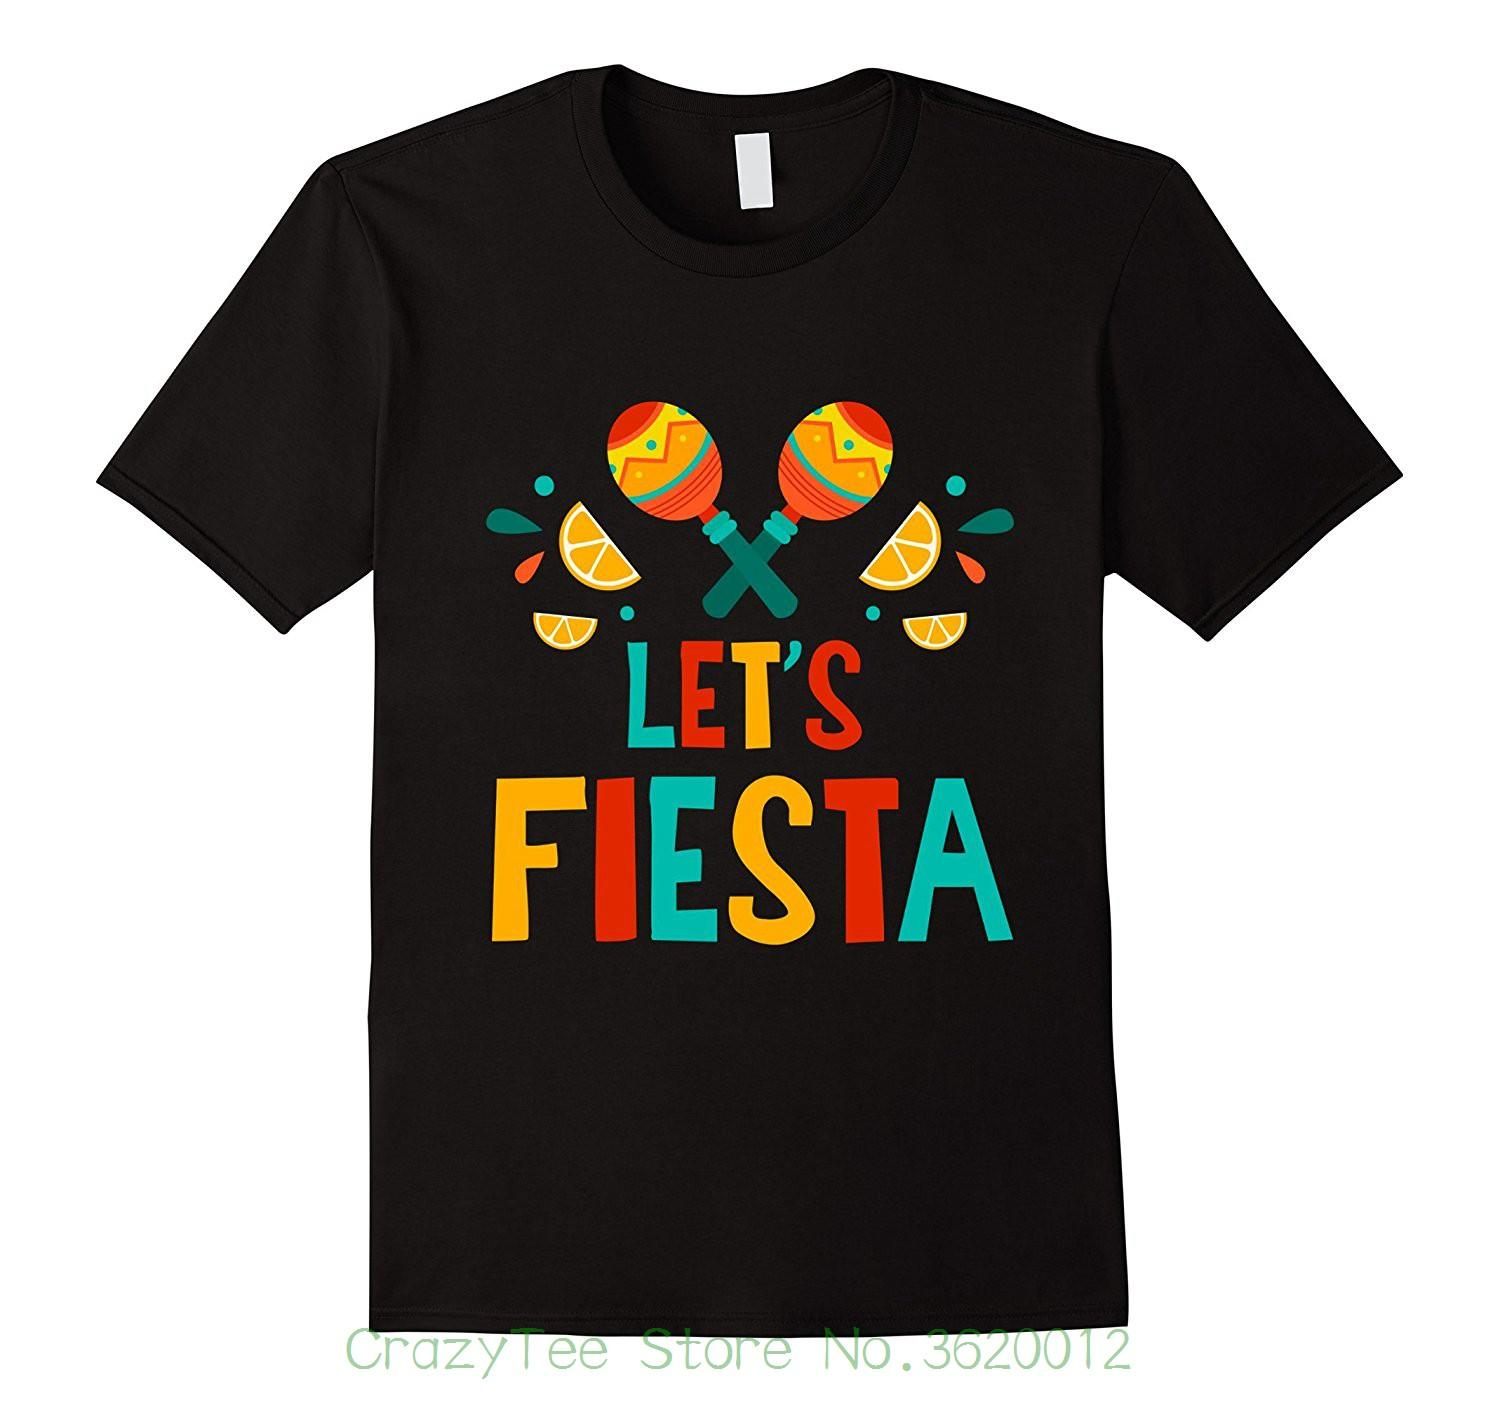 dd01c888d7298 Short Sleeves New Fashion T-shirt Men Clothing Fiesta - Funny Cute Mexico  Mexican Party T Shirt